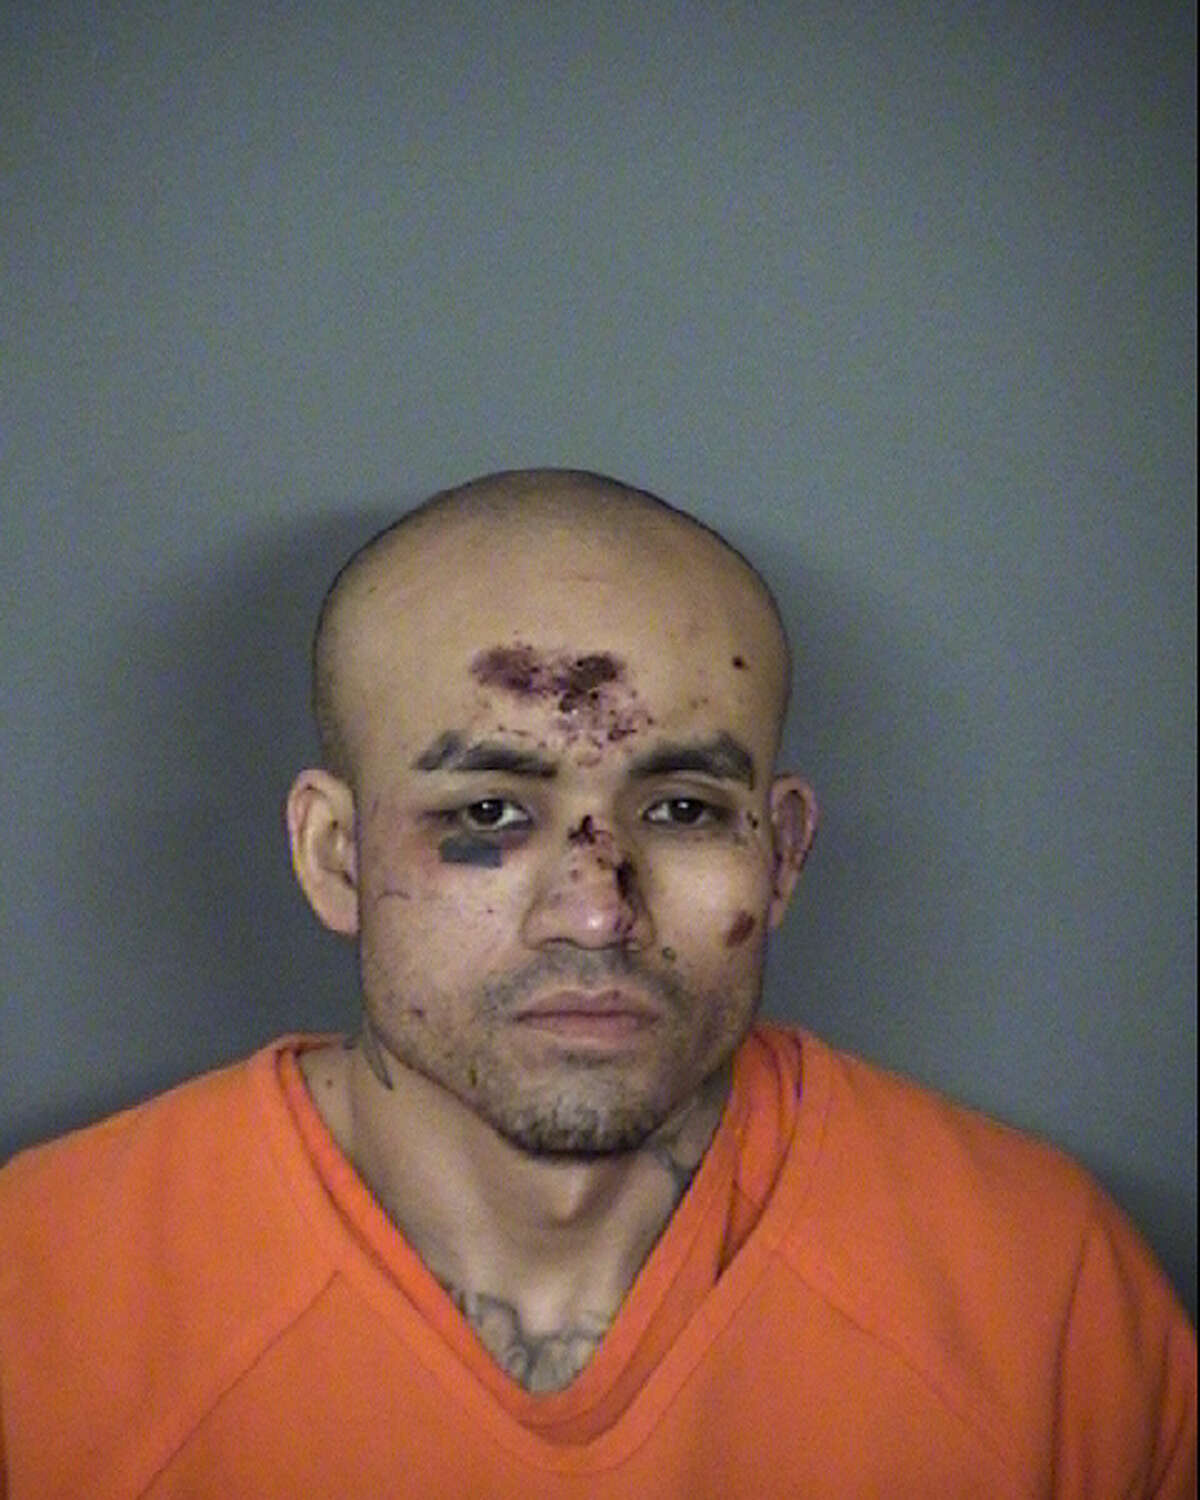 James Solis, 29, was arrested March 1, 2017, following a high-speed chase with police in San Antonio. He faces several felony charges.